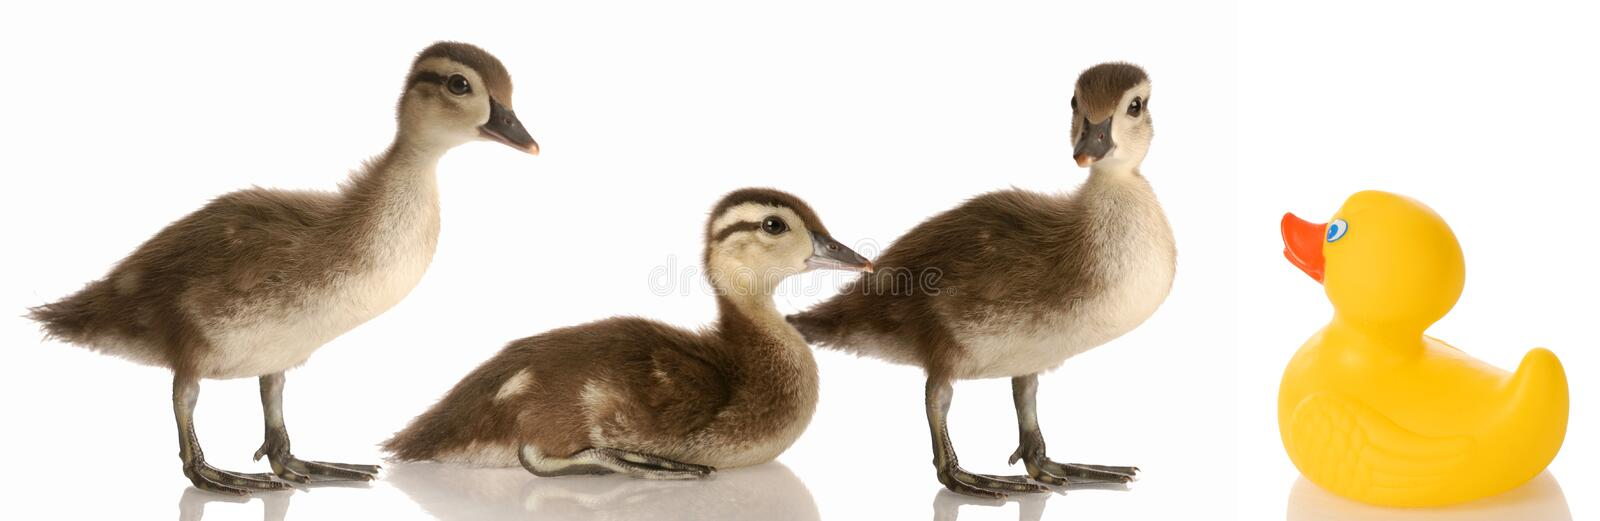 Download Blended family stock image. Image of happy, bird, funny - 10326343